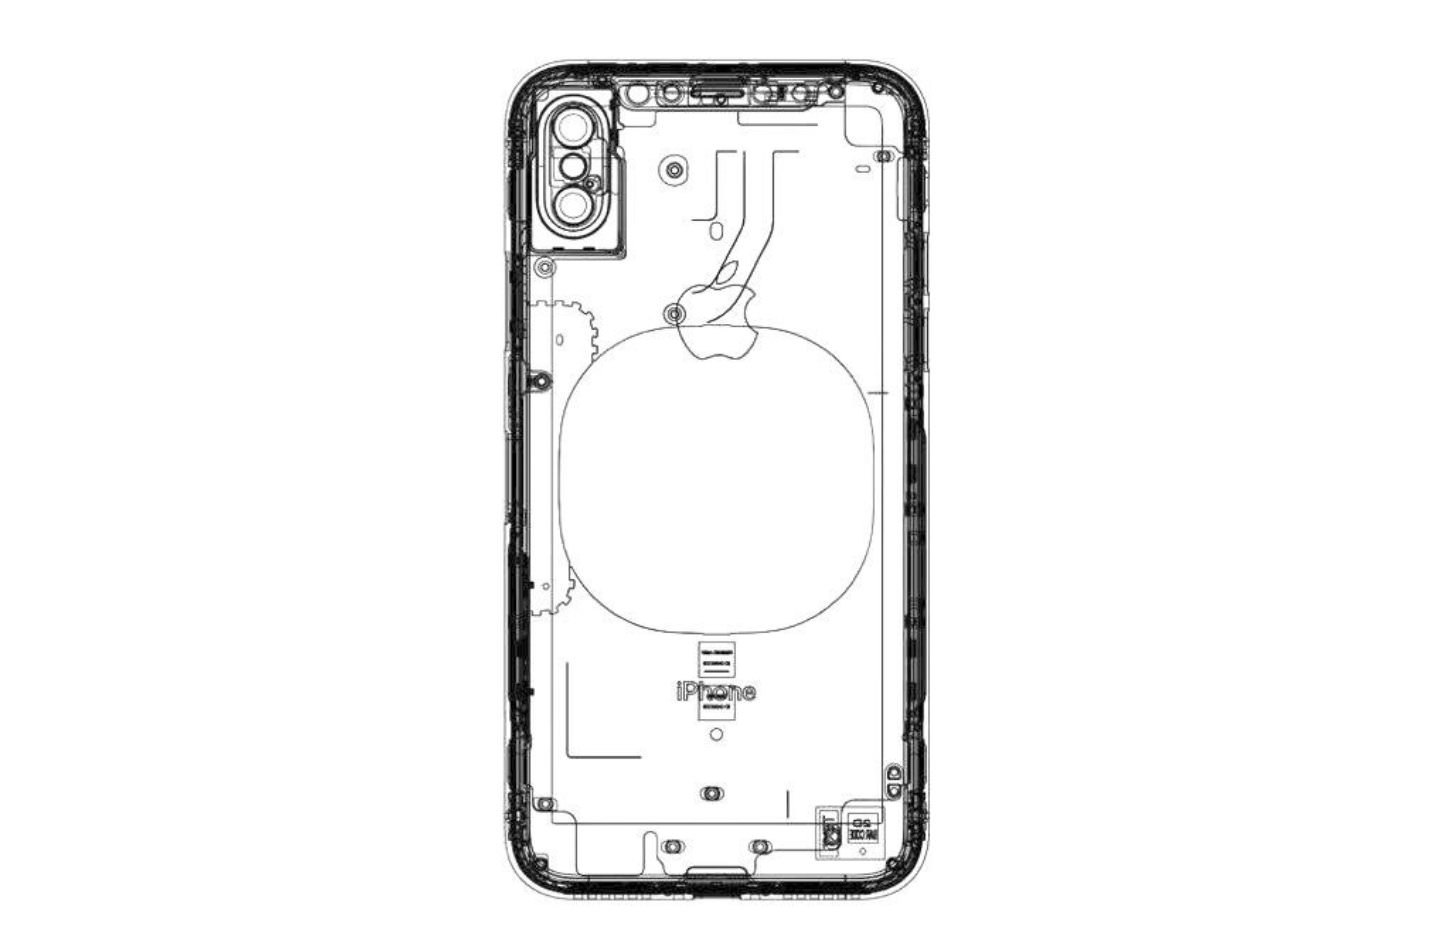 Iphone8 schematics